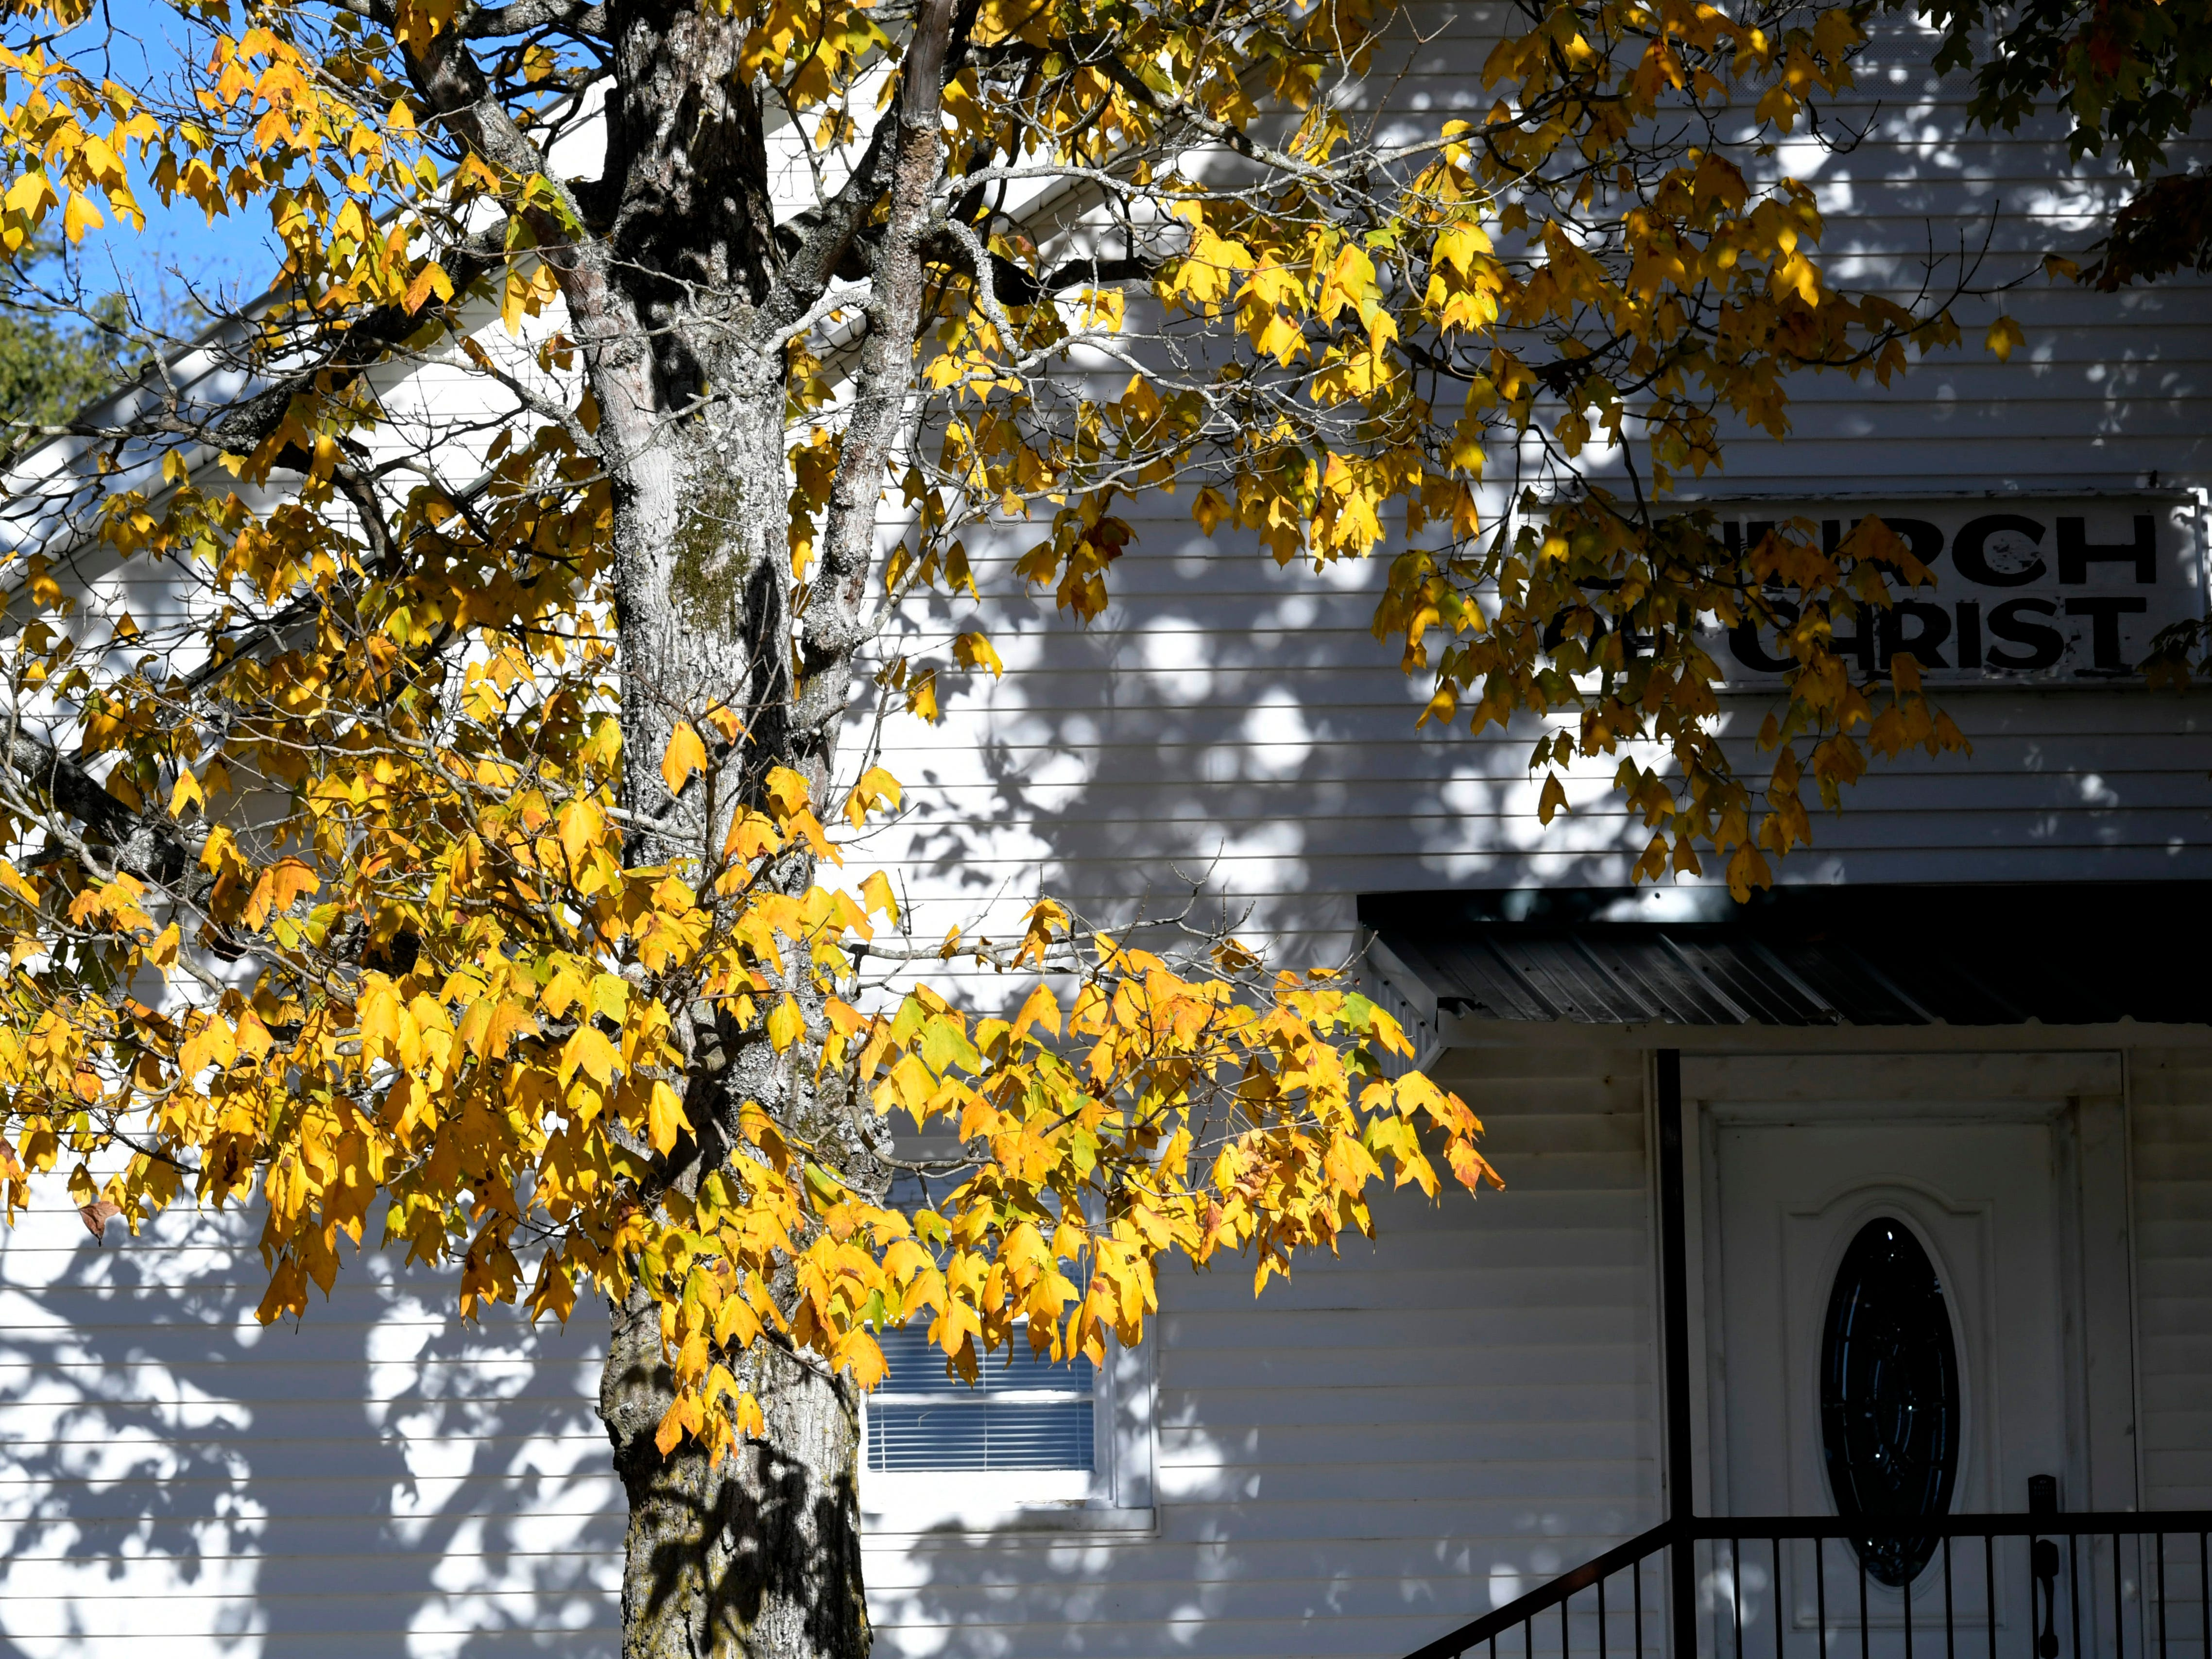 Leaves begin to change color at Burwood Church of Christ in Burwood, Tenn. on Tuesday, Oct 30, 2018.